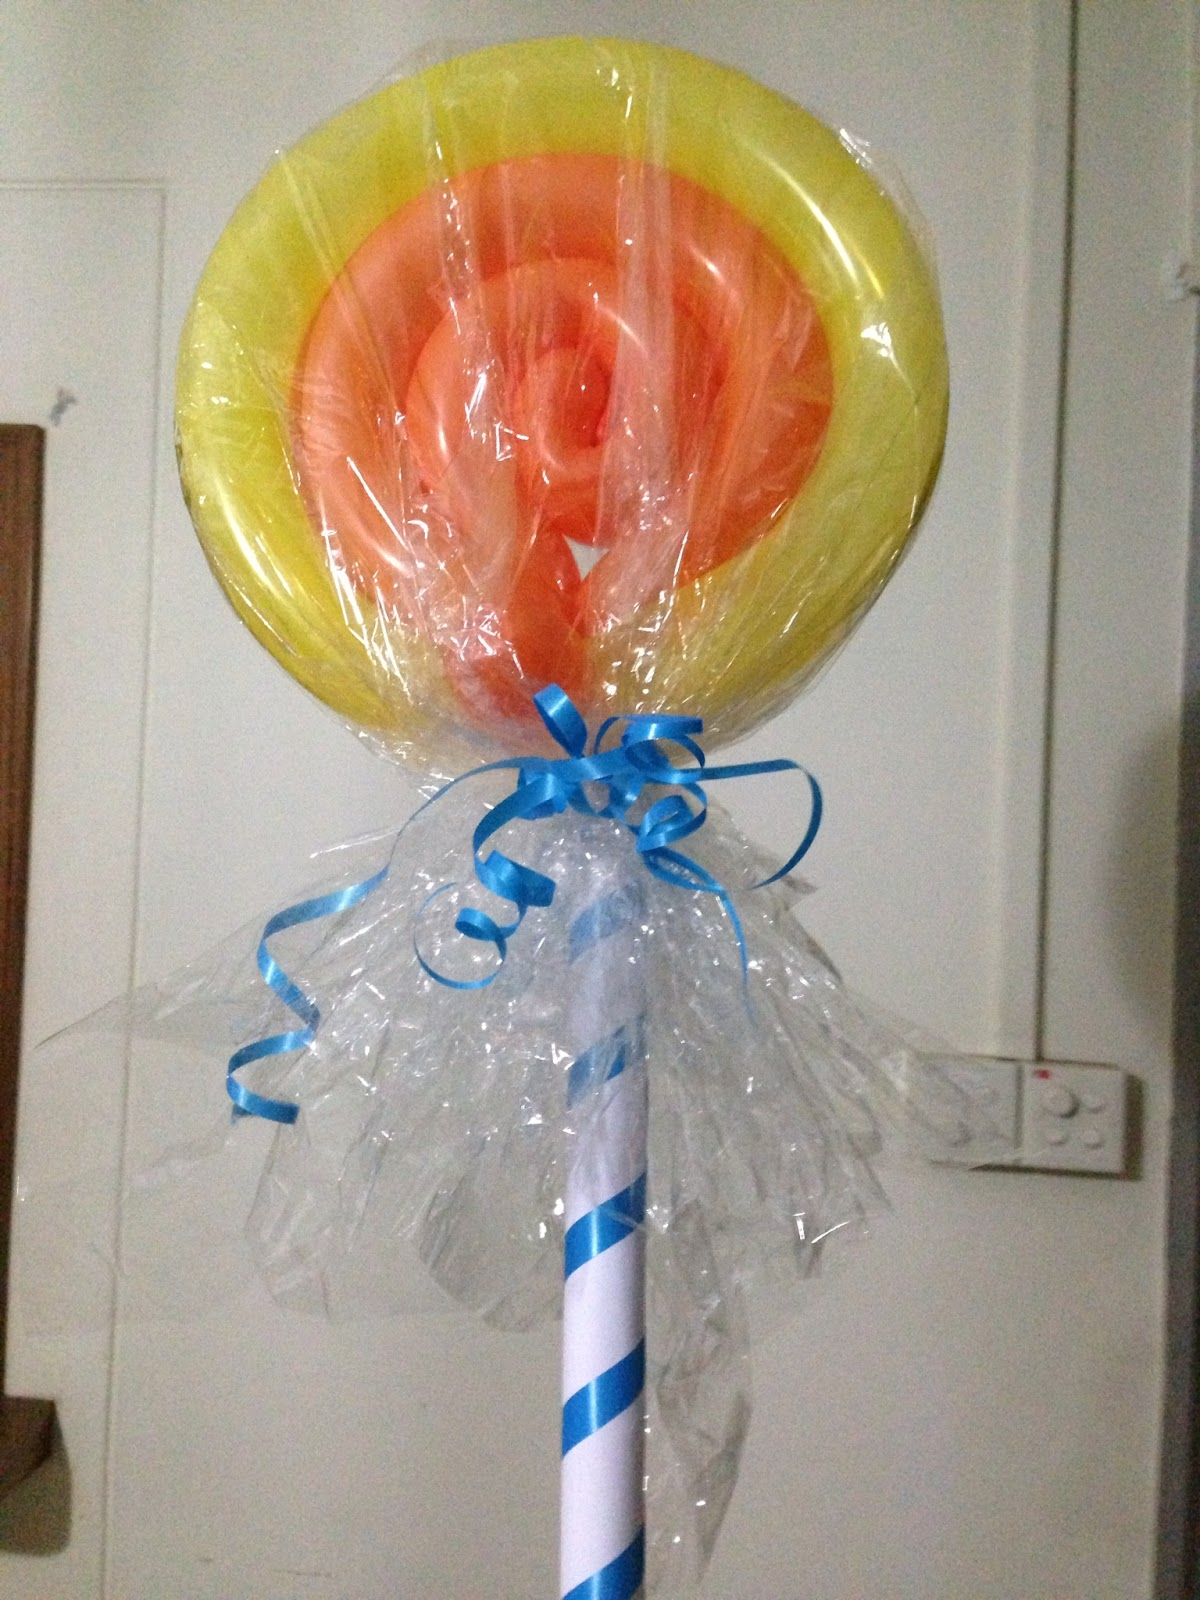 How To Make A Lollipop From A Pool Noodle Just B Cause